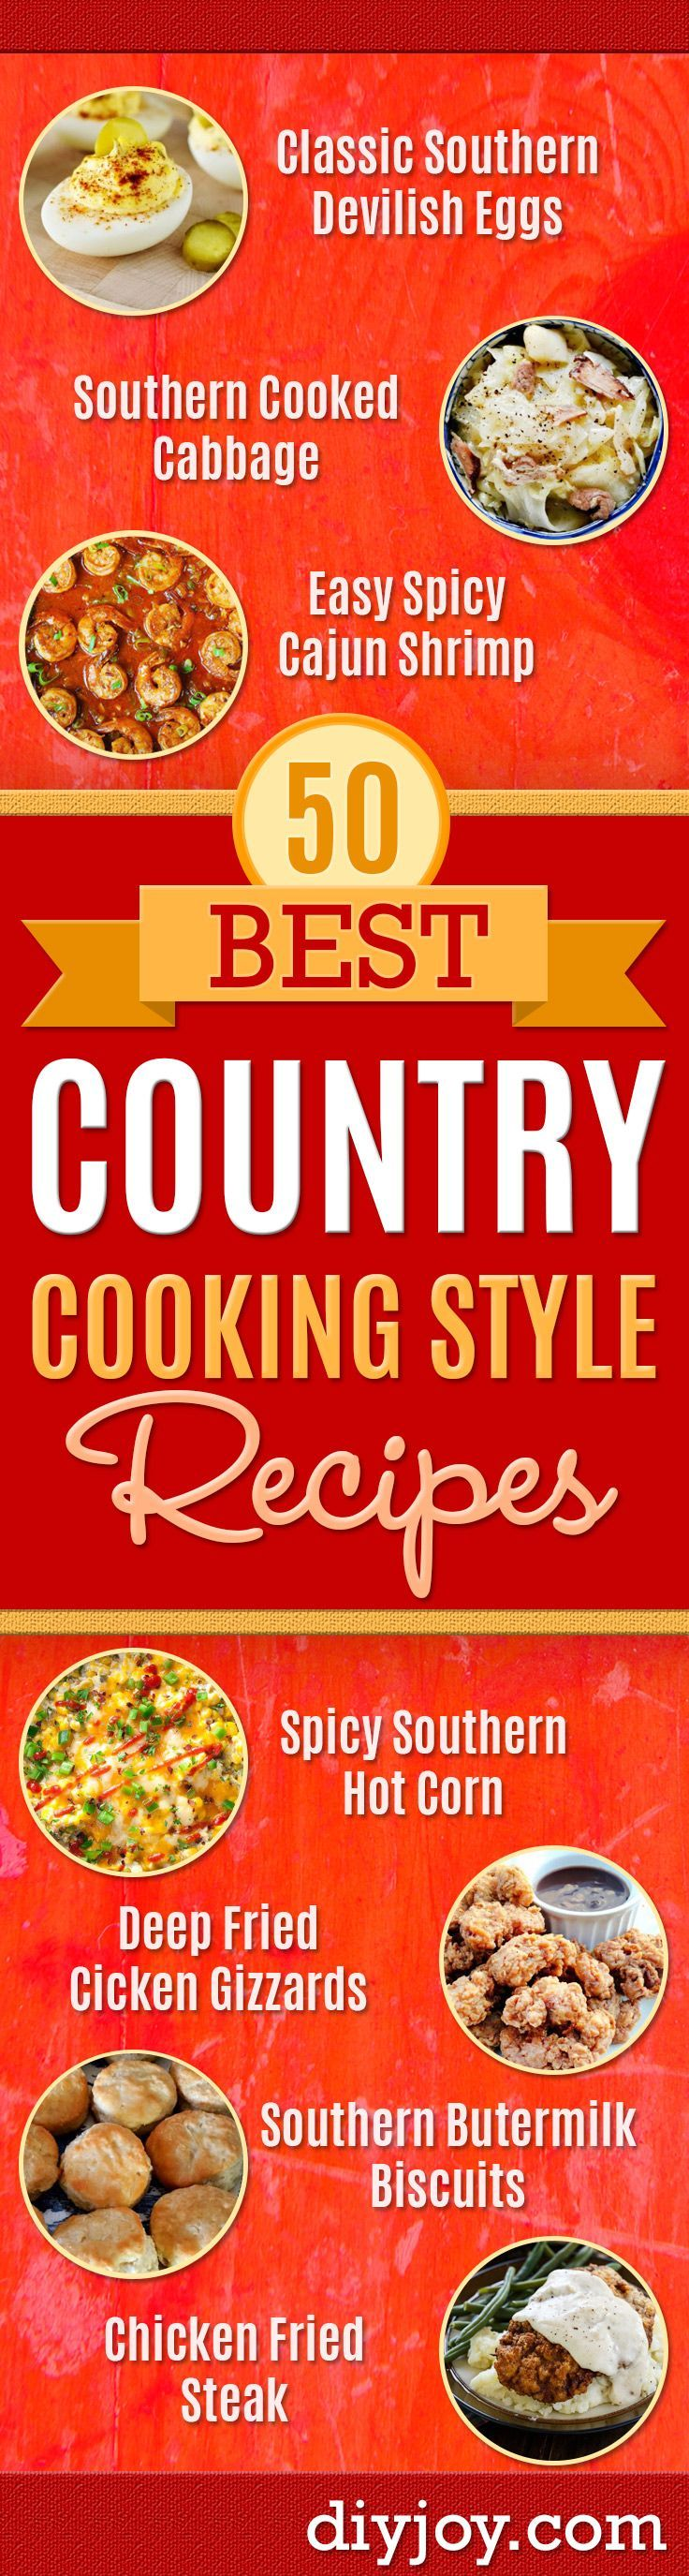 Best Country Cooking Recipes - Easy Recipes for Country Food Like Chicken Fried Steak, Fried Green Tomatoes, Southern Gravy, Breads and Biscuits, Casseroles and More - Breakfast, Lunch and Dinner Recipe Ideas for Families and Feeding A Crowd - Step by Step Instructions for Making Homestyle Dips, Snacks, Desserts http://diyjoy.com/country-cooking-recipes